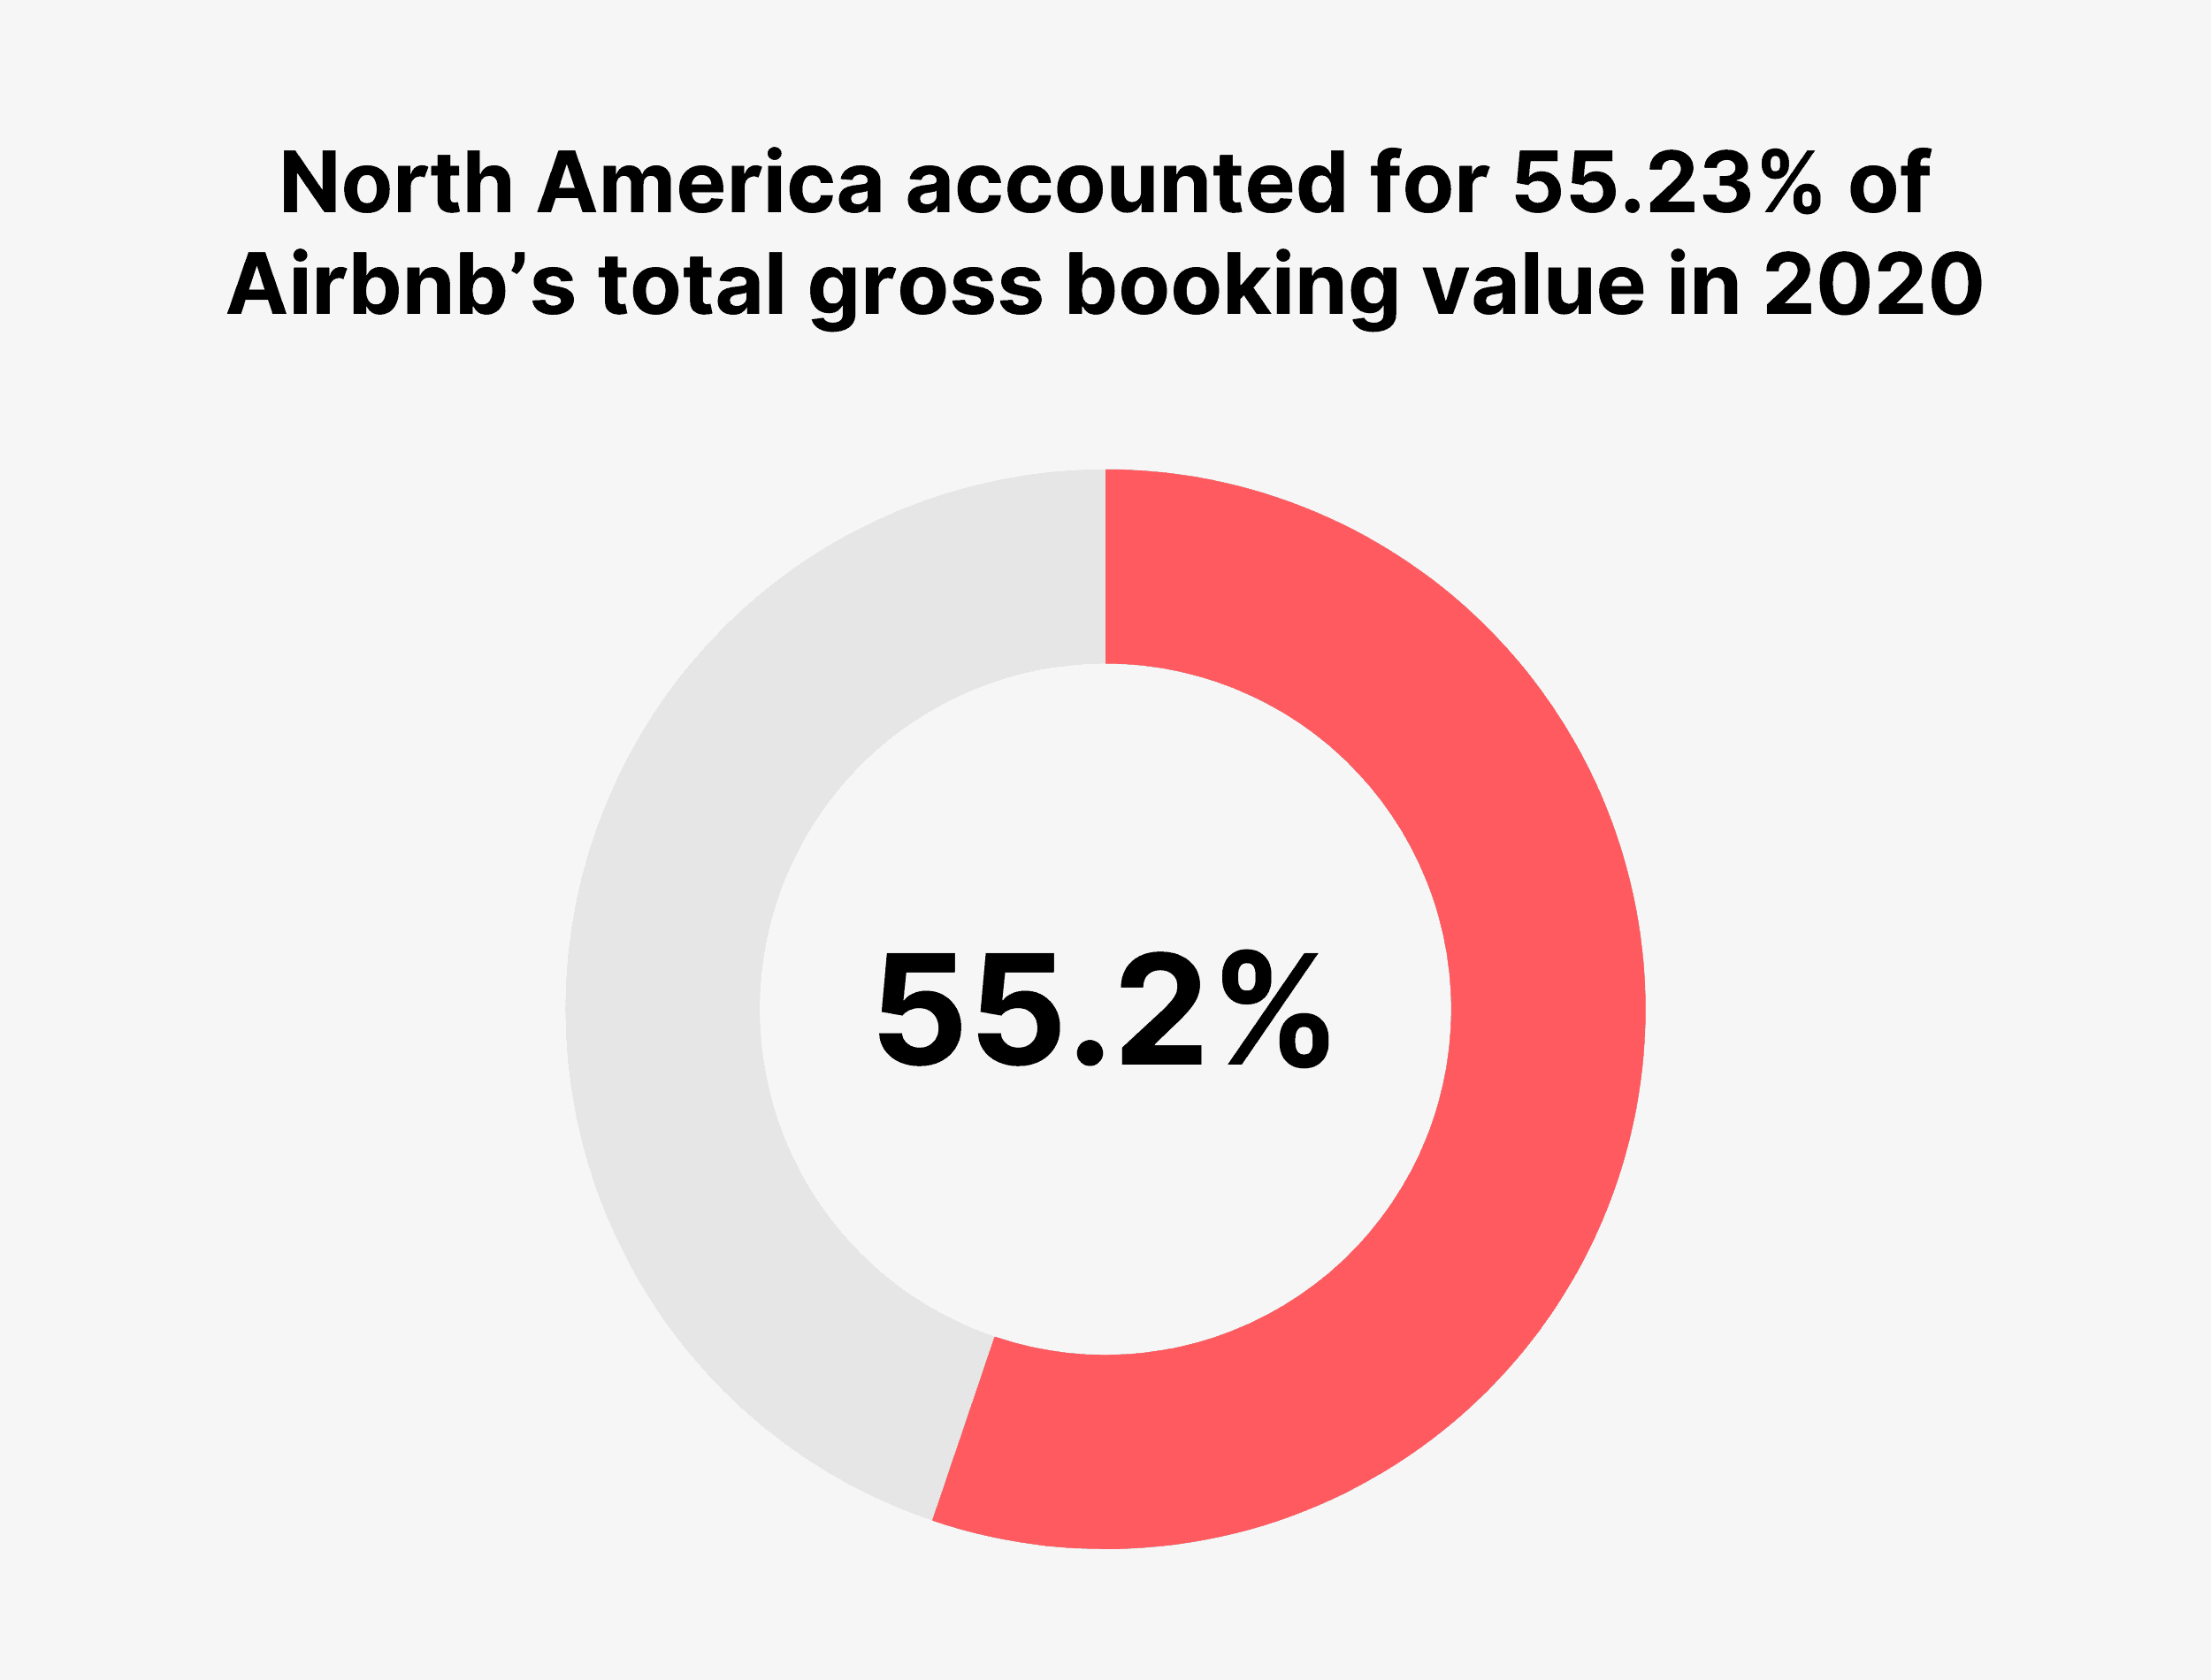 North America accounted for 55.23% of Airbnb's total gross booking value in 2020